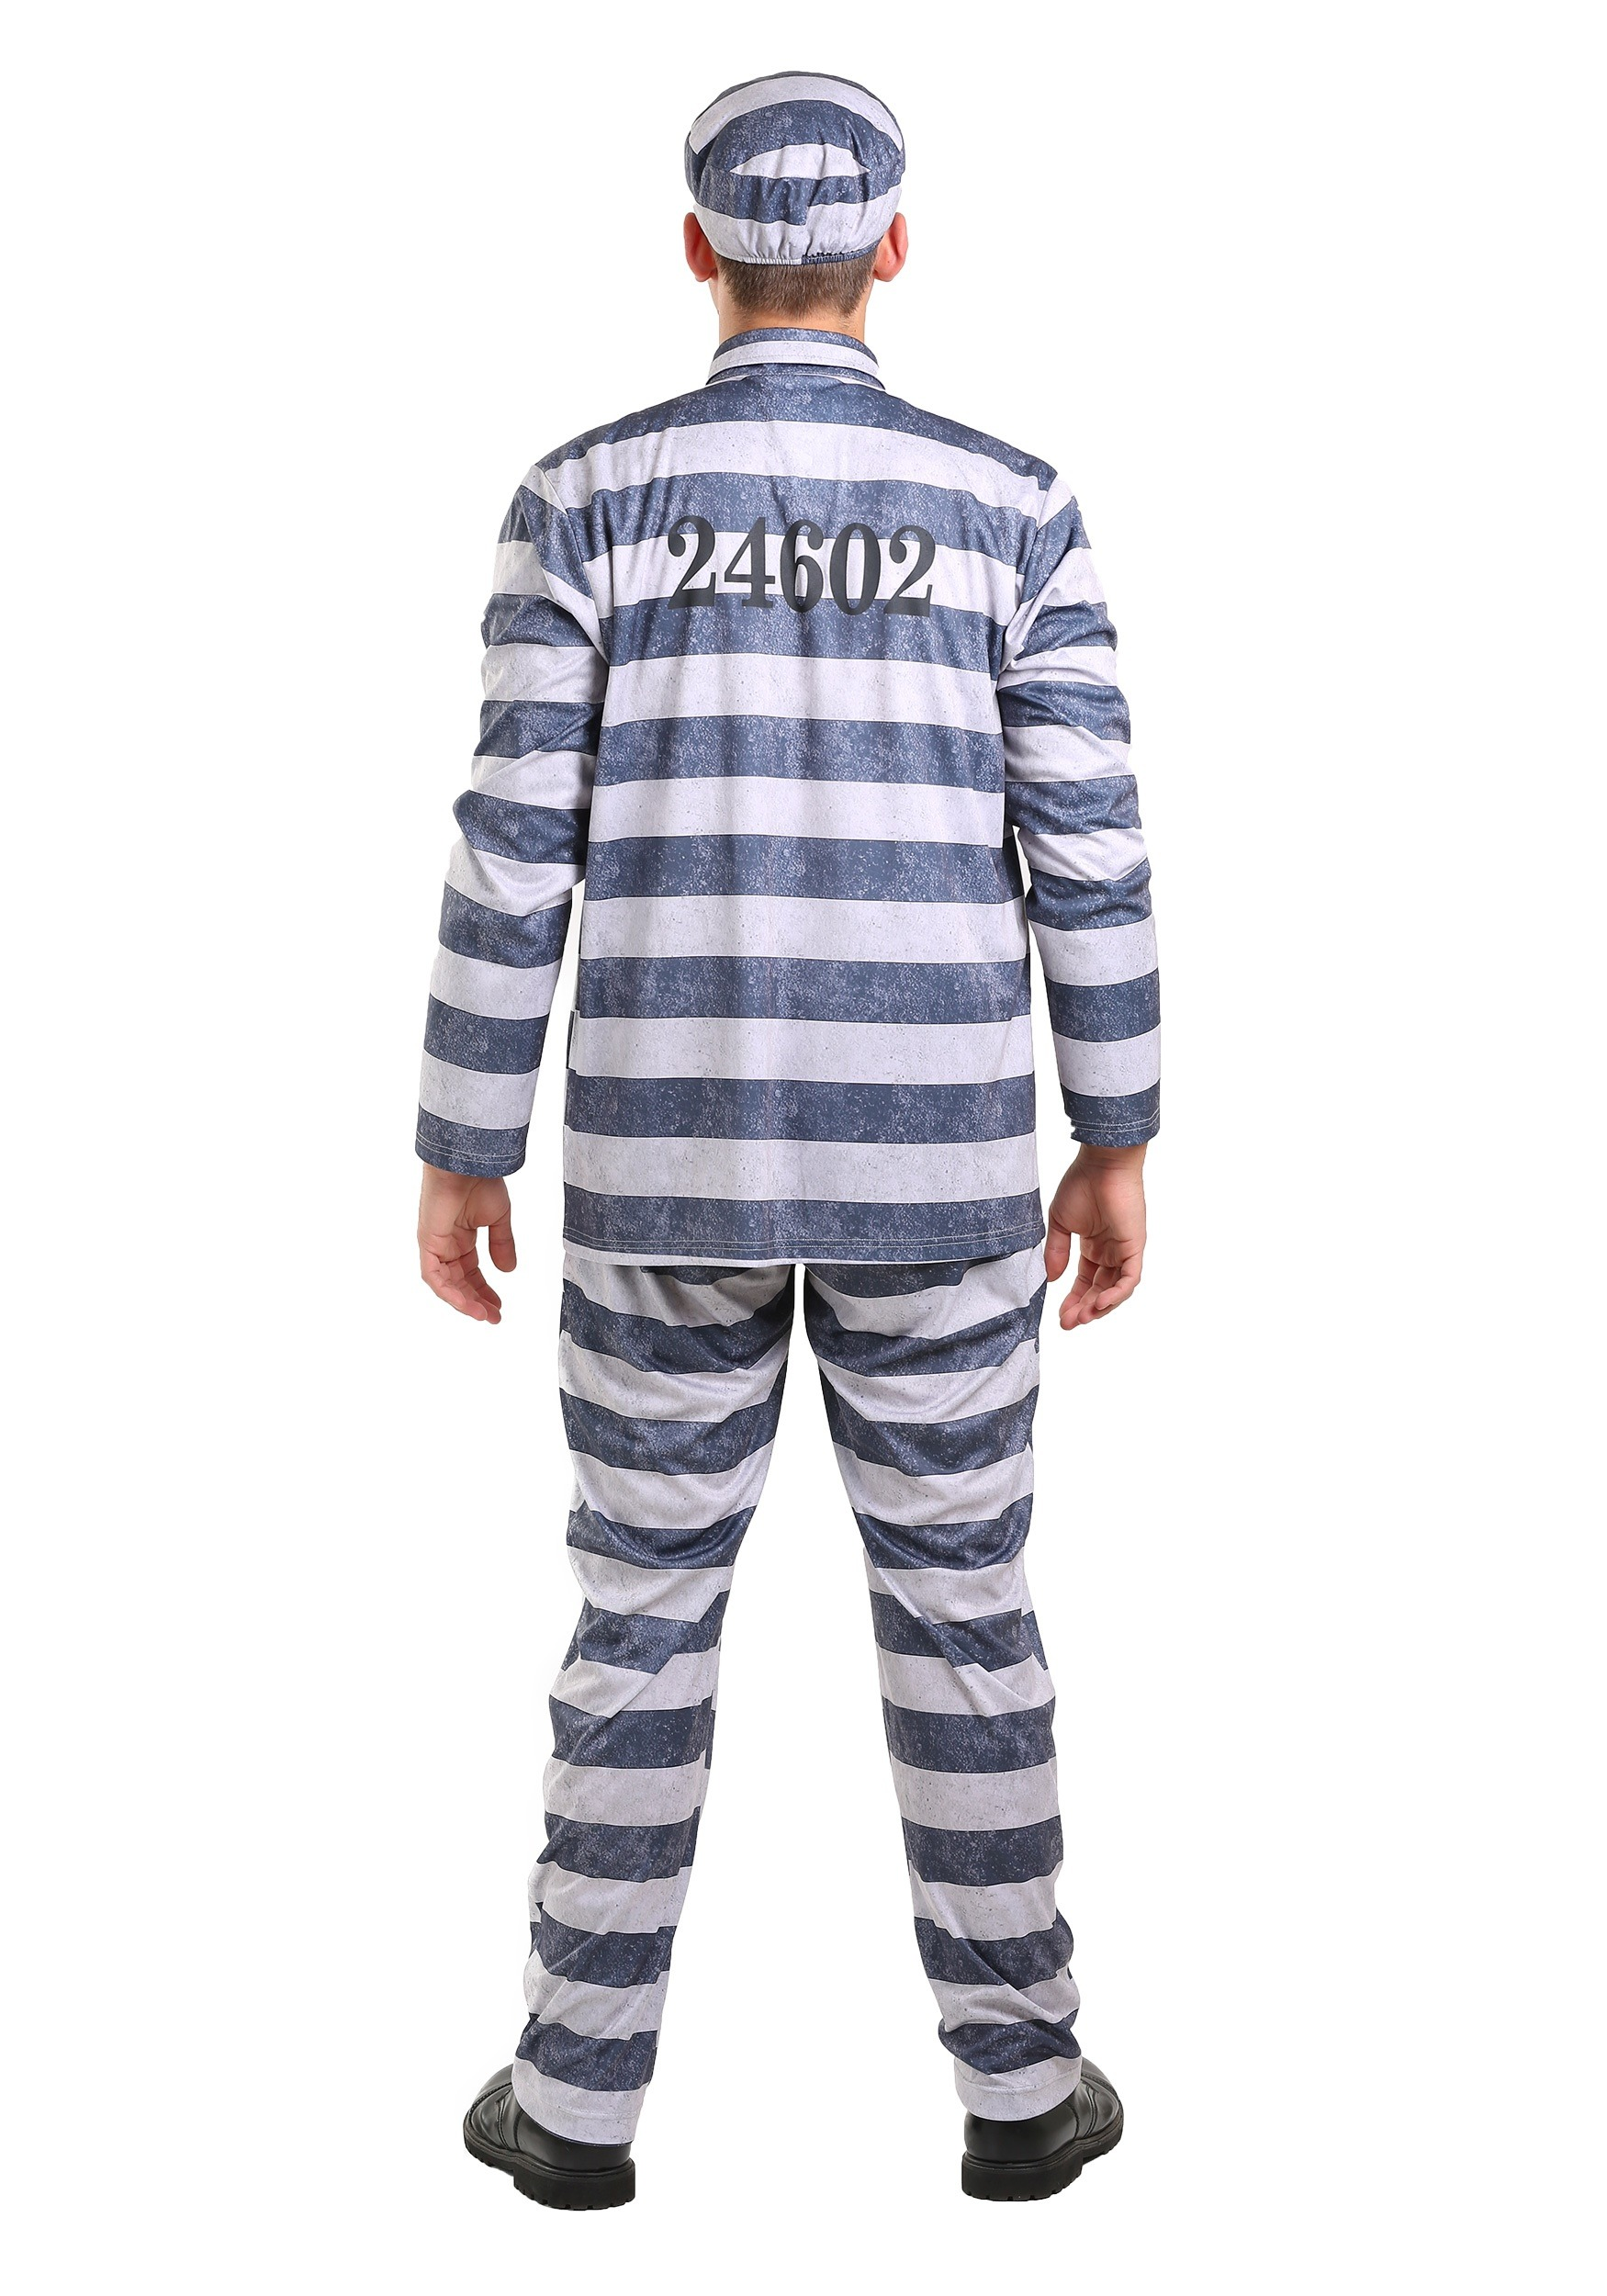 Vintage Prisoner Costume For Men